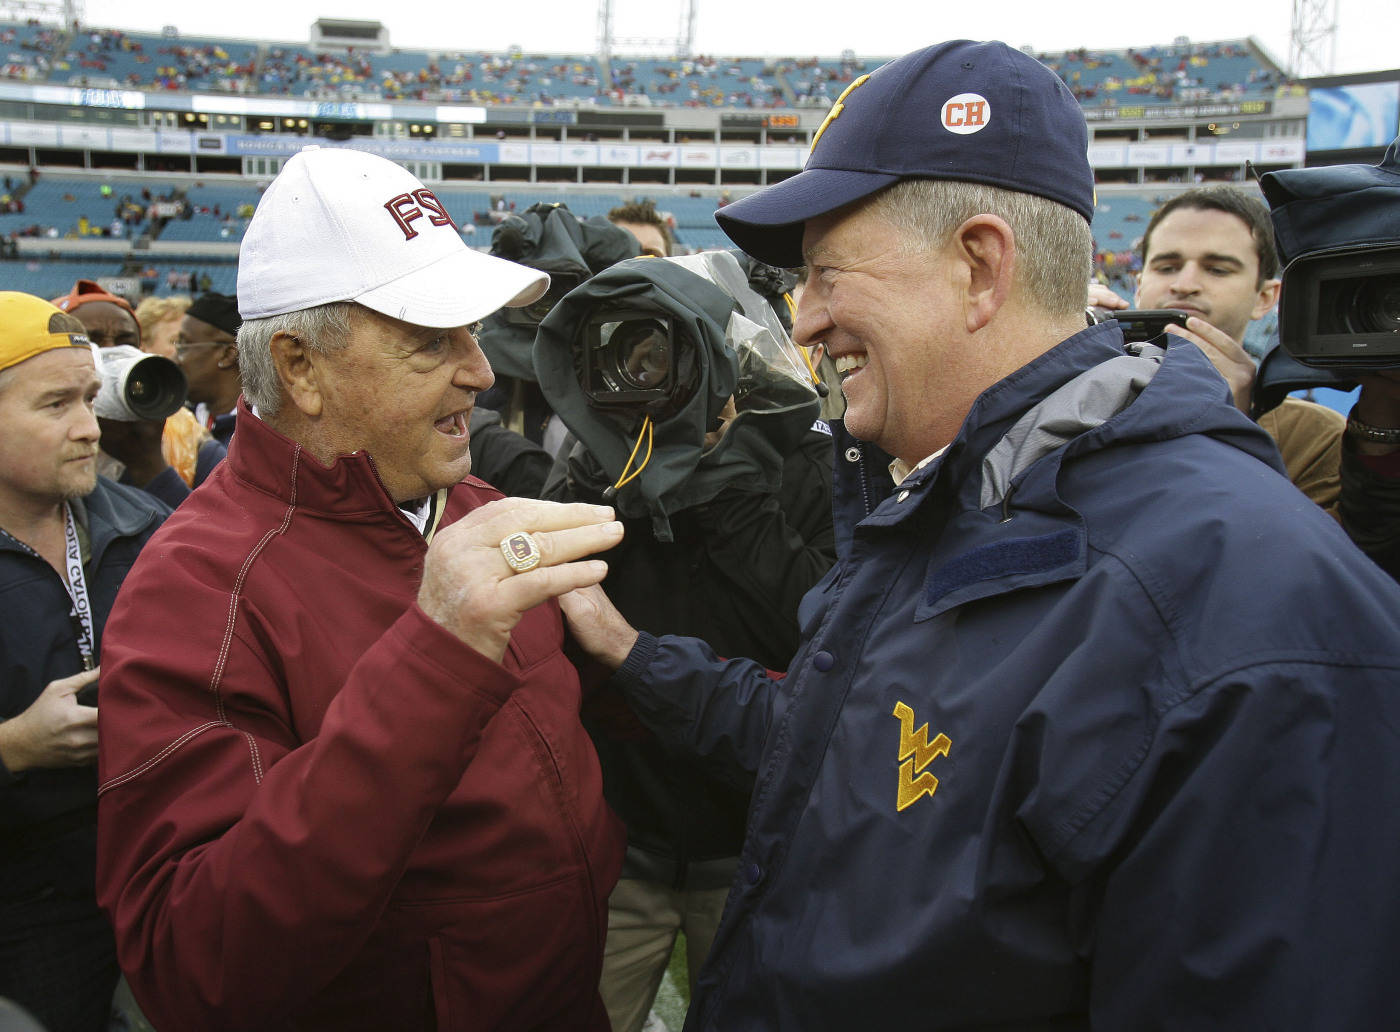 Florida State head coach, Bobby Bowden, left, meets with West Virginia head coach, Bill Stewart, prior to the kickoff of the Gator Bowl NCAA college football game, Friday, Jan. 1, 2010, in Jacksonville, Fla.(AP Photo/Phil Coale)